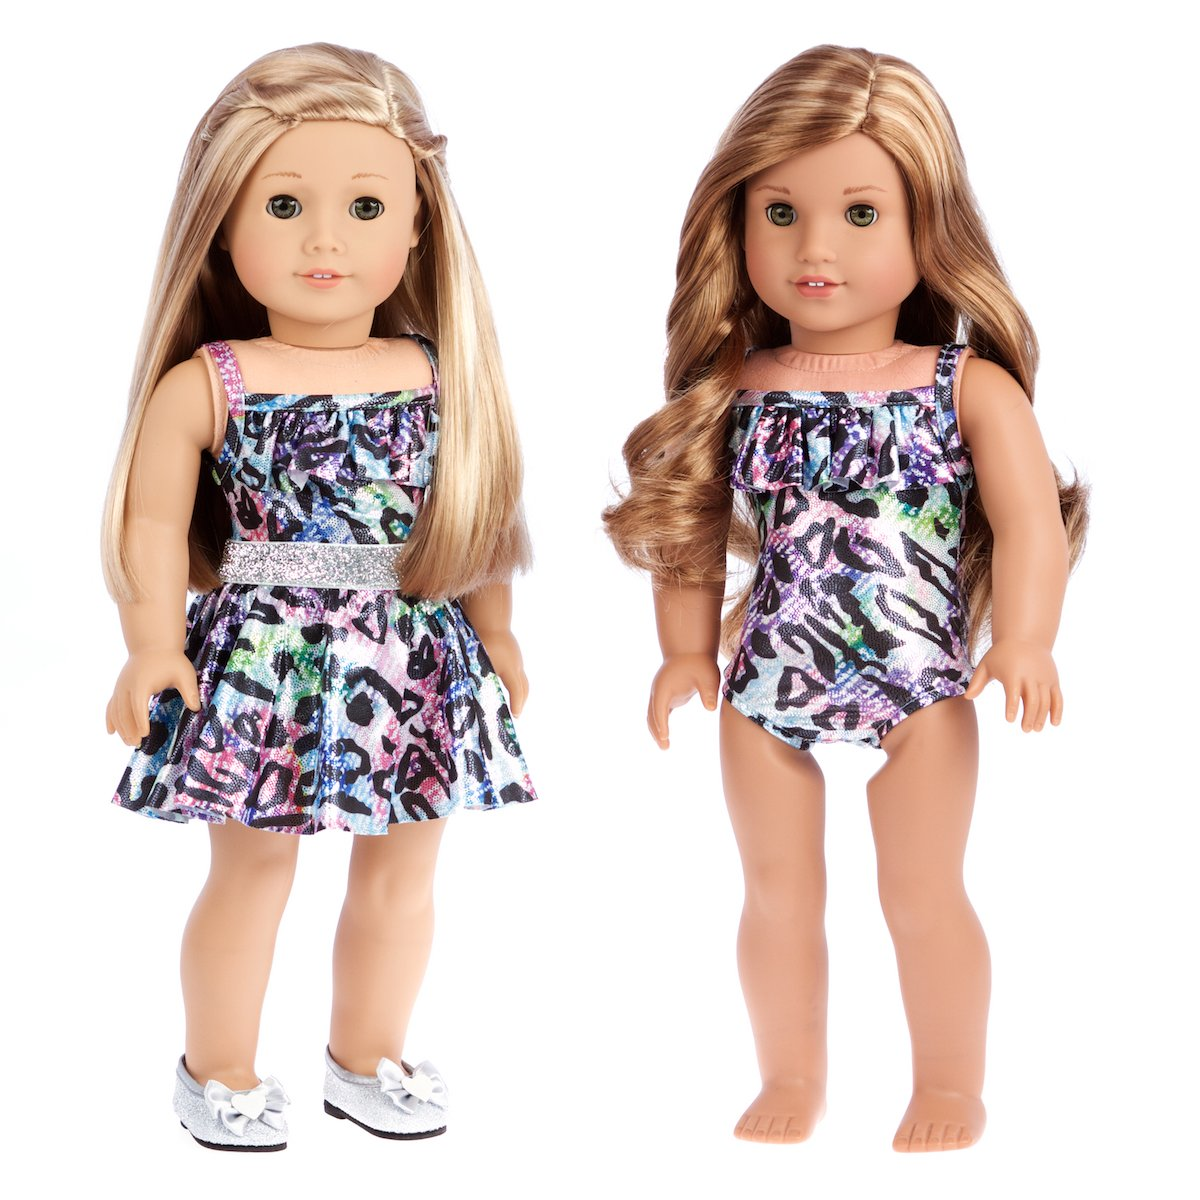 Skirt Dolls Not Included Blouse Nightgown Ultimate Play Set 7 Piece DreamWorld Collections Pants 3 Mix and Match Outfits with Shoes Swim Suit Leather Jacket and Shoes. Clothes Fits 18 Inch American Girl Doll